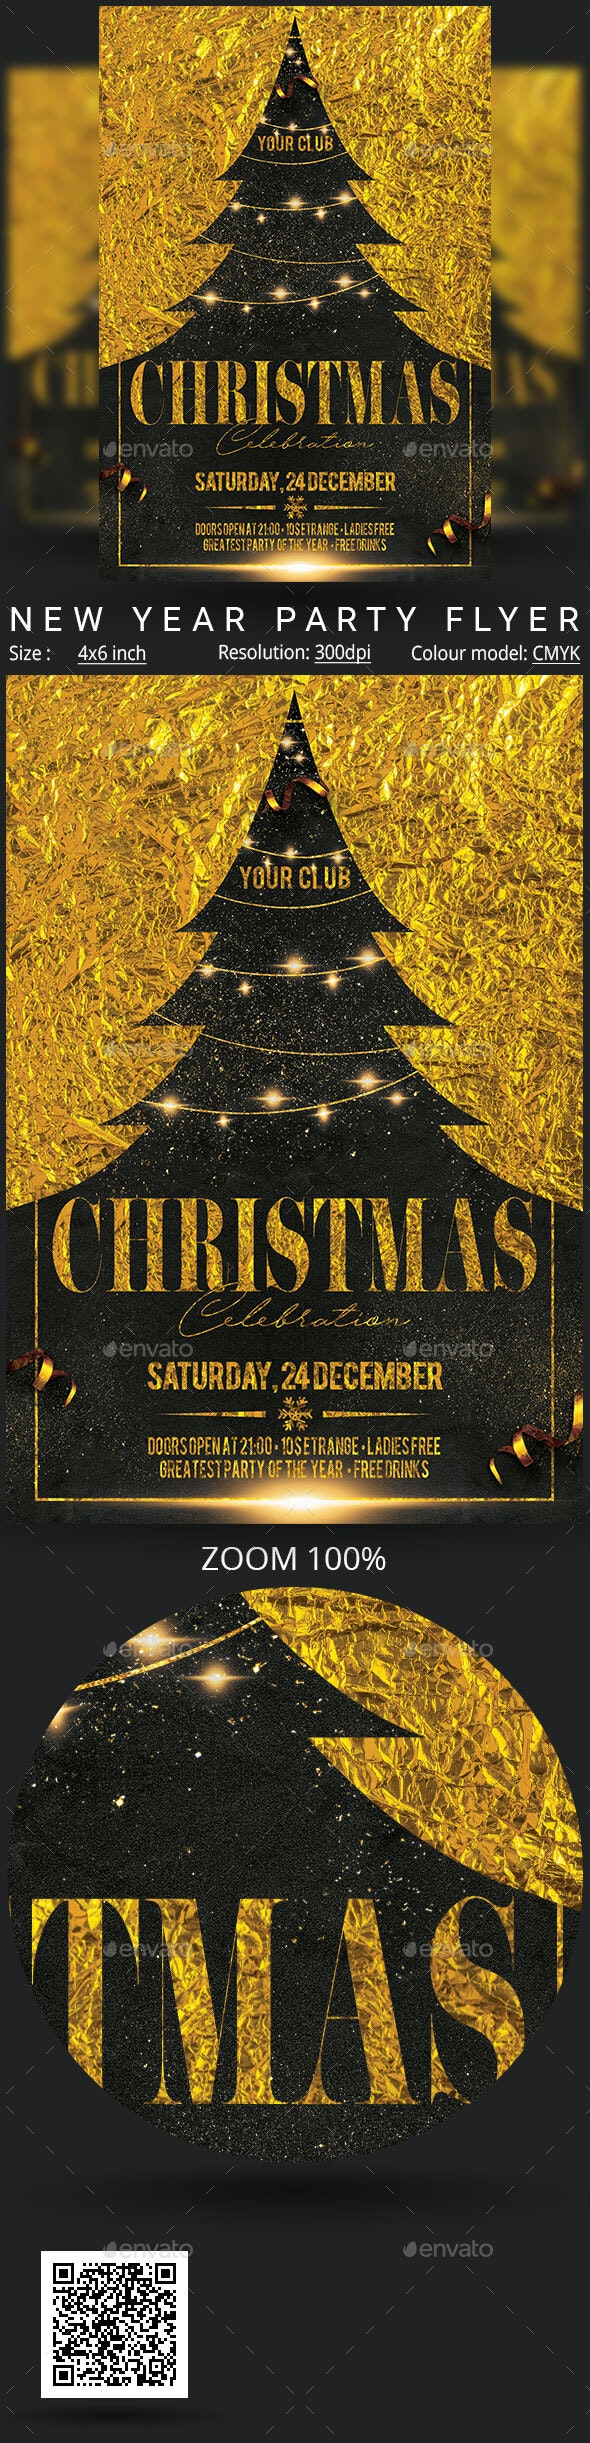 Black & Gold Christmas Party Flyer Template